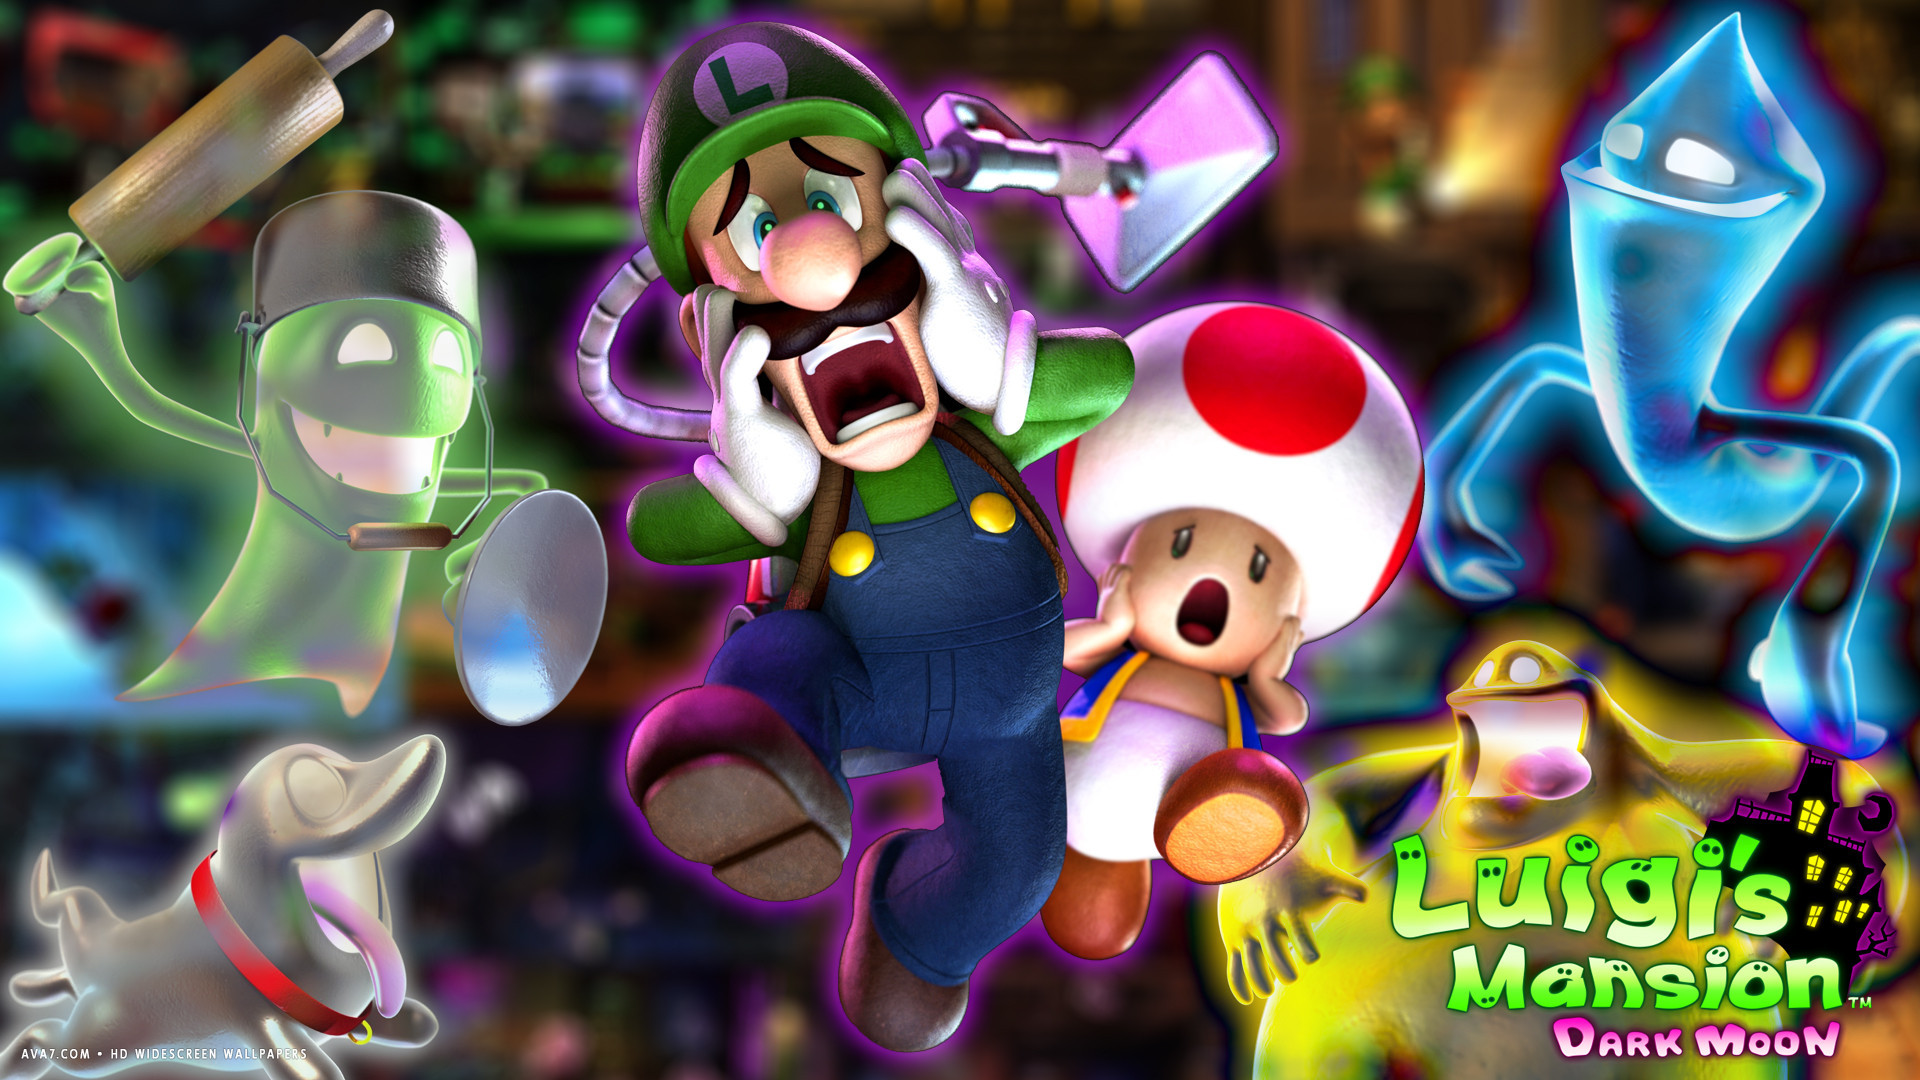 luigis mansion 2 game dark moon hd widescreen wallpaper